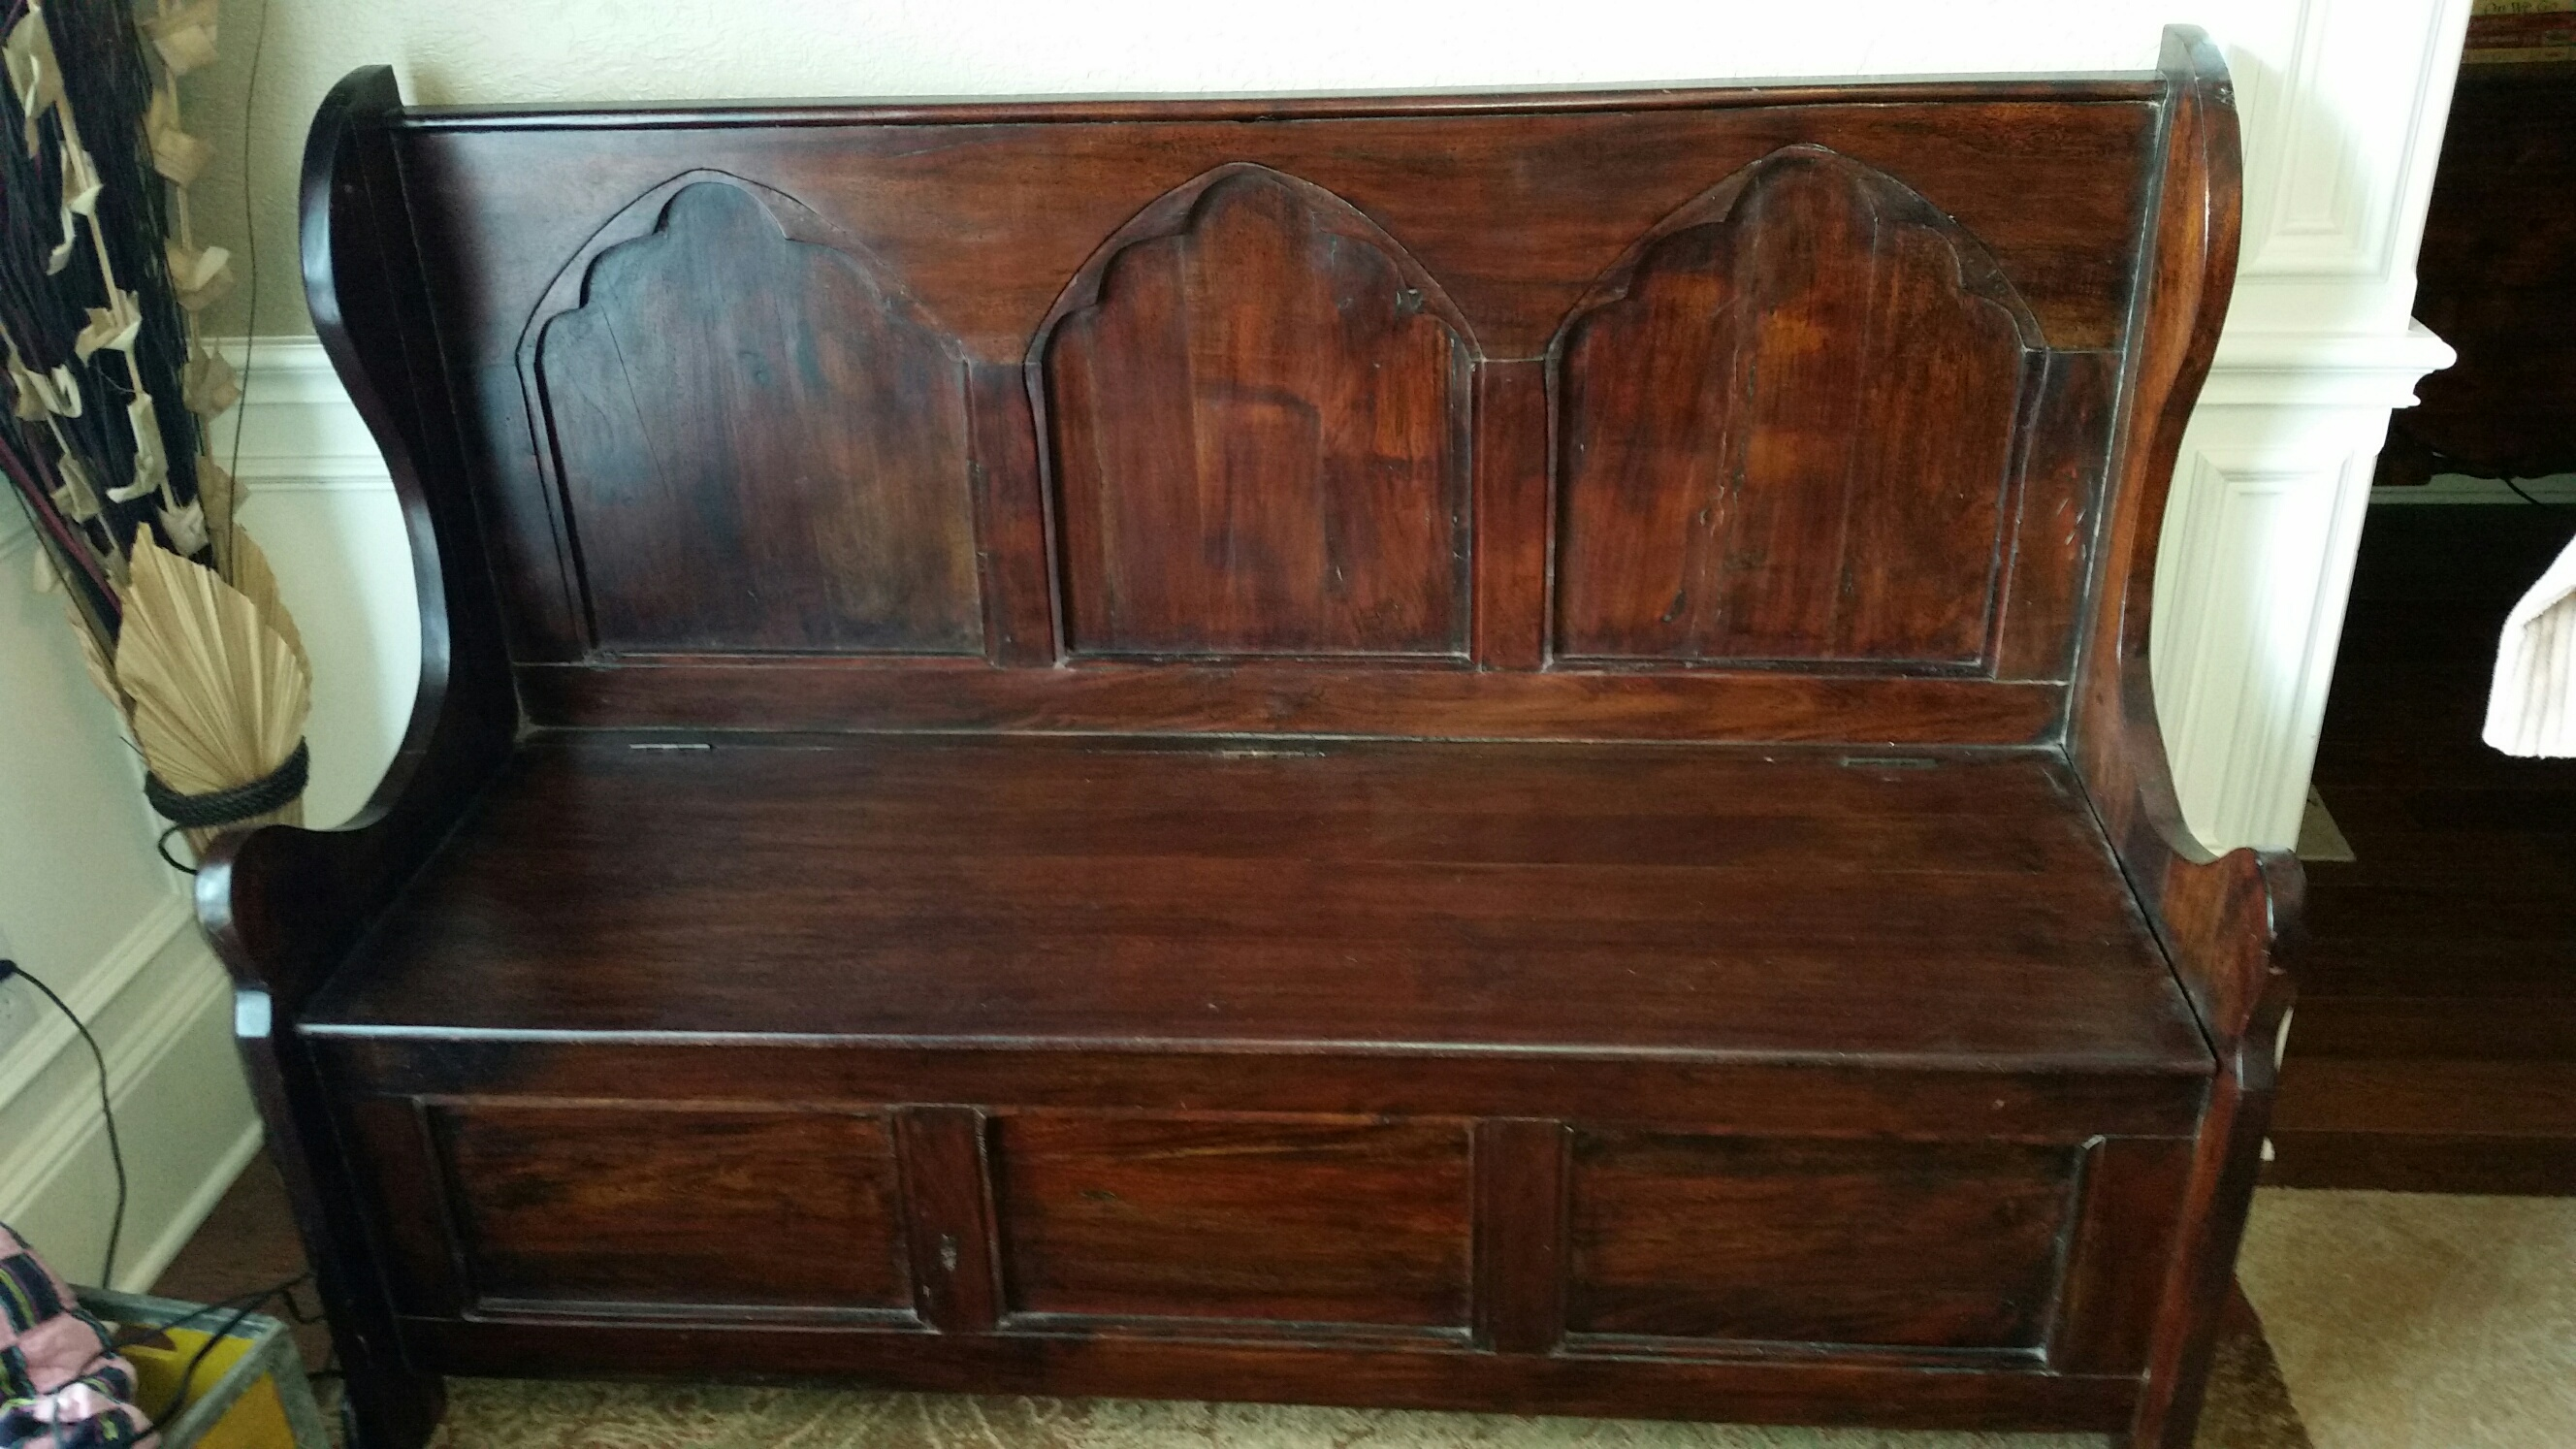 Wooden Storage Bench Wooden Storage Bench Antique Appraisal Instappraisal